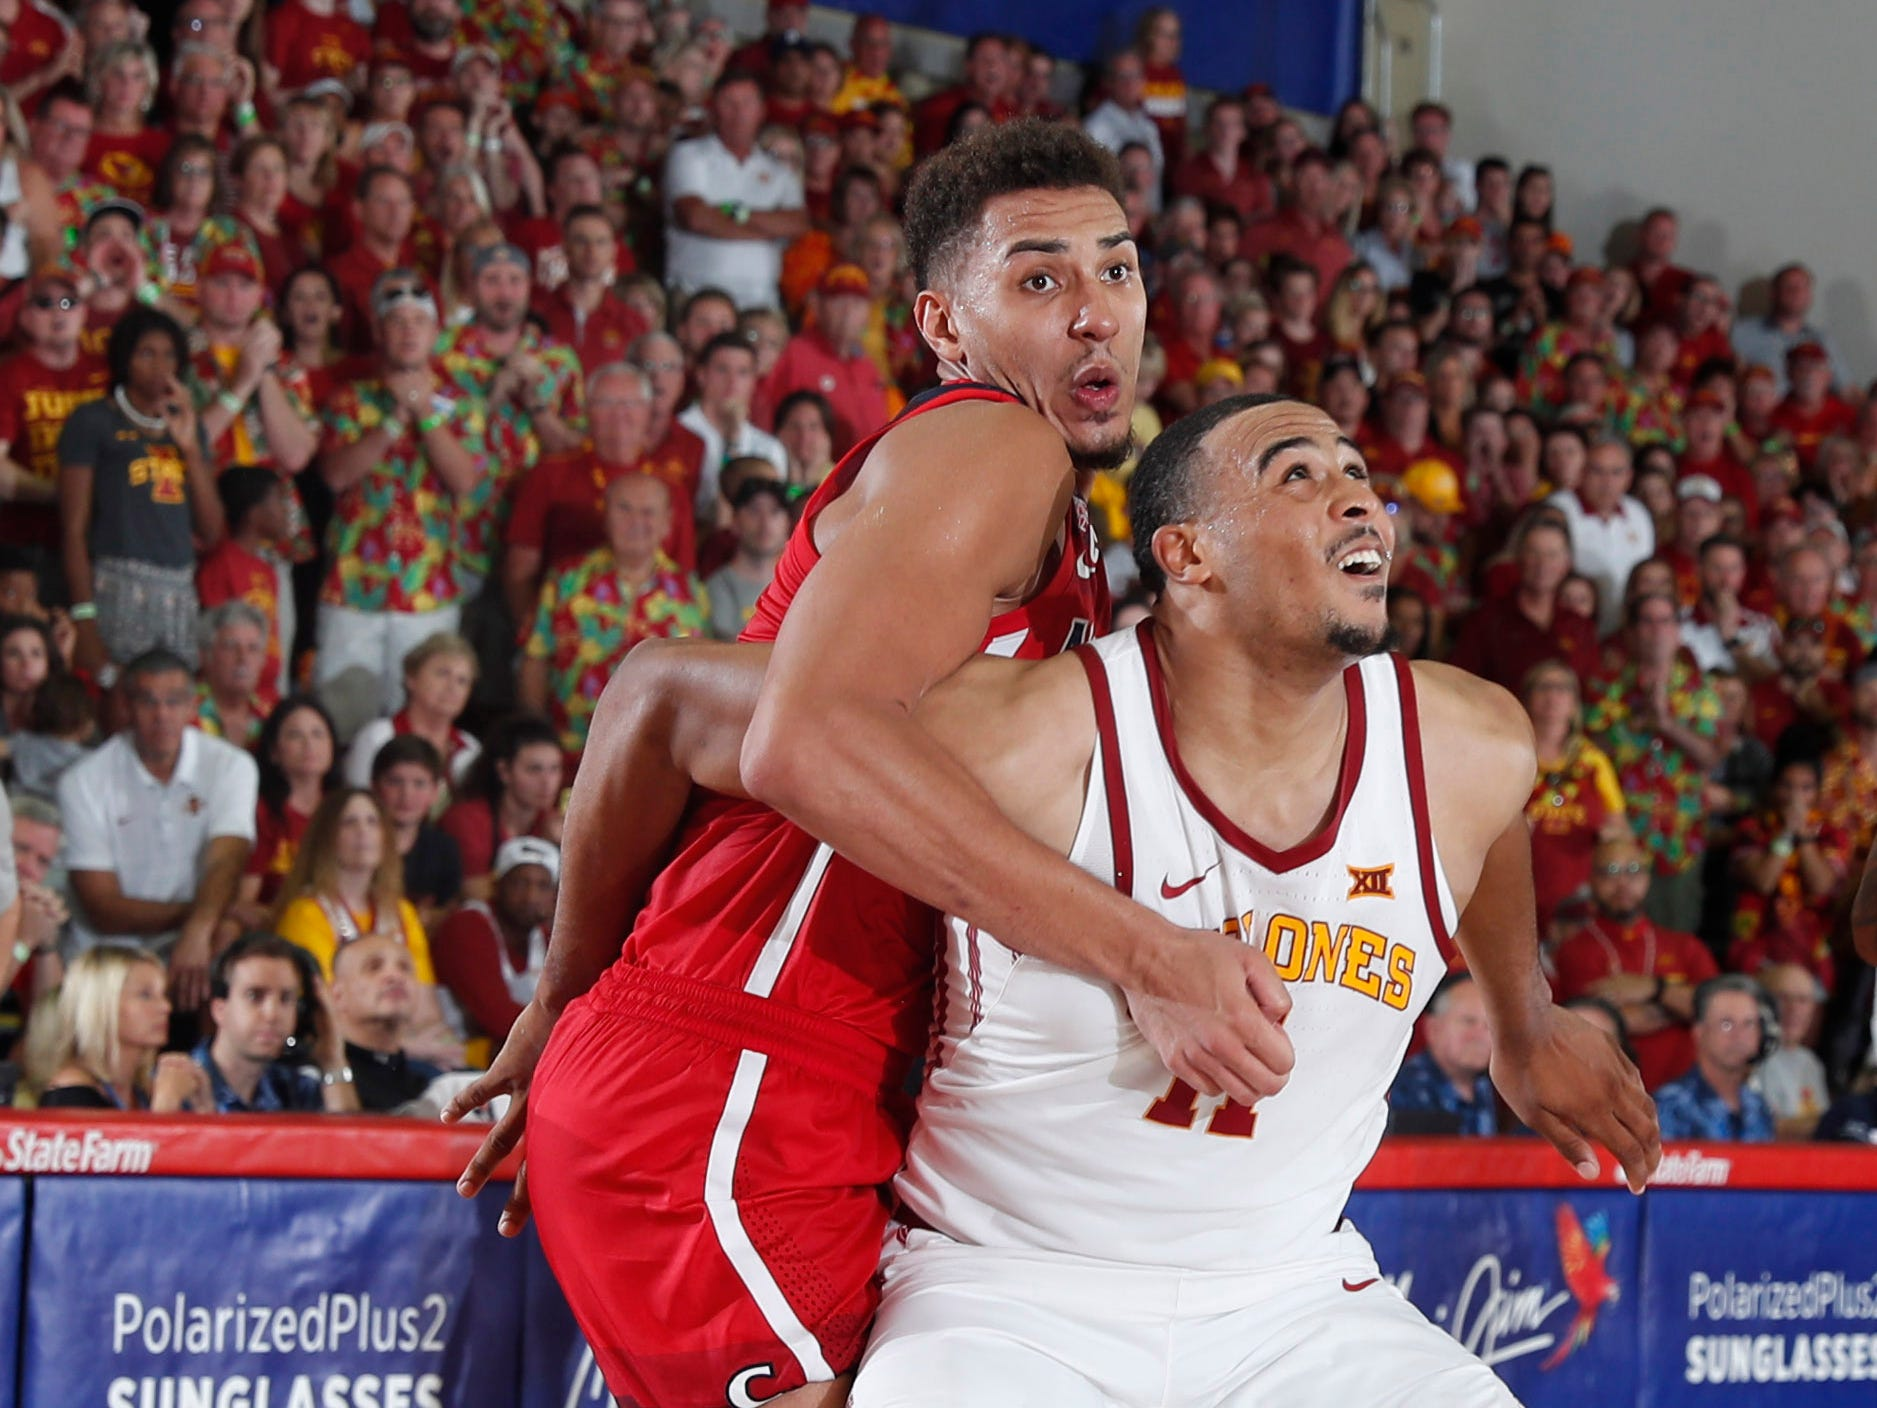 Iowa State Cyclones guard Talen Horton-Tucker (11) blocks out Arizona Wildcats forward Chase Jeter (4) in the second half during round one of the Maui Jim Maui Invitational at Lahaina Civic Center.